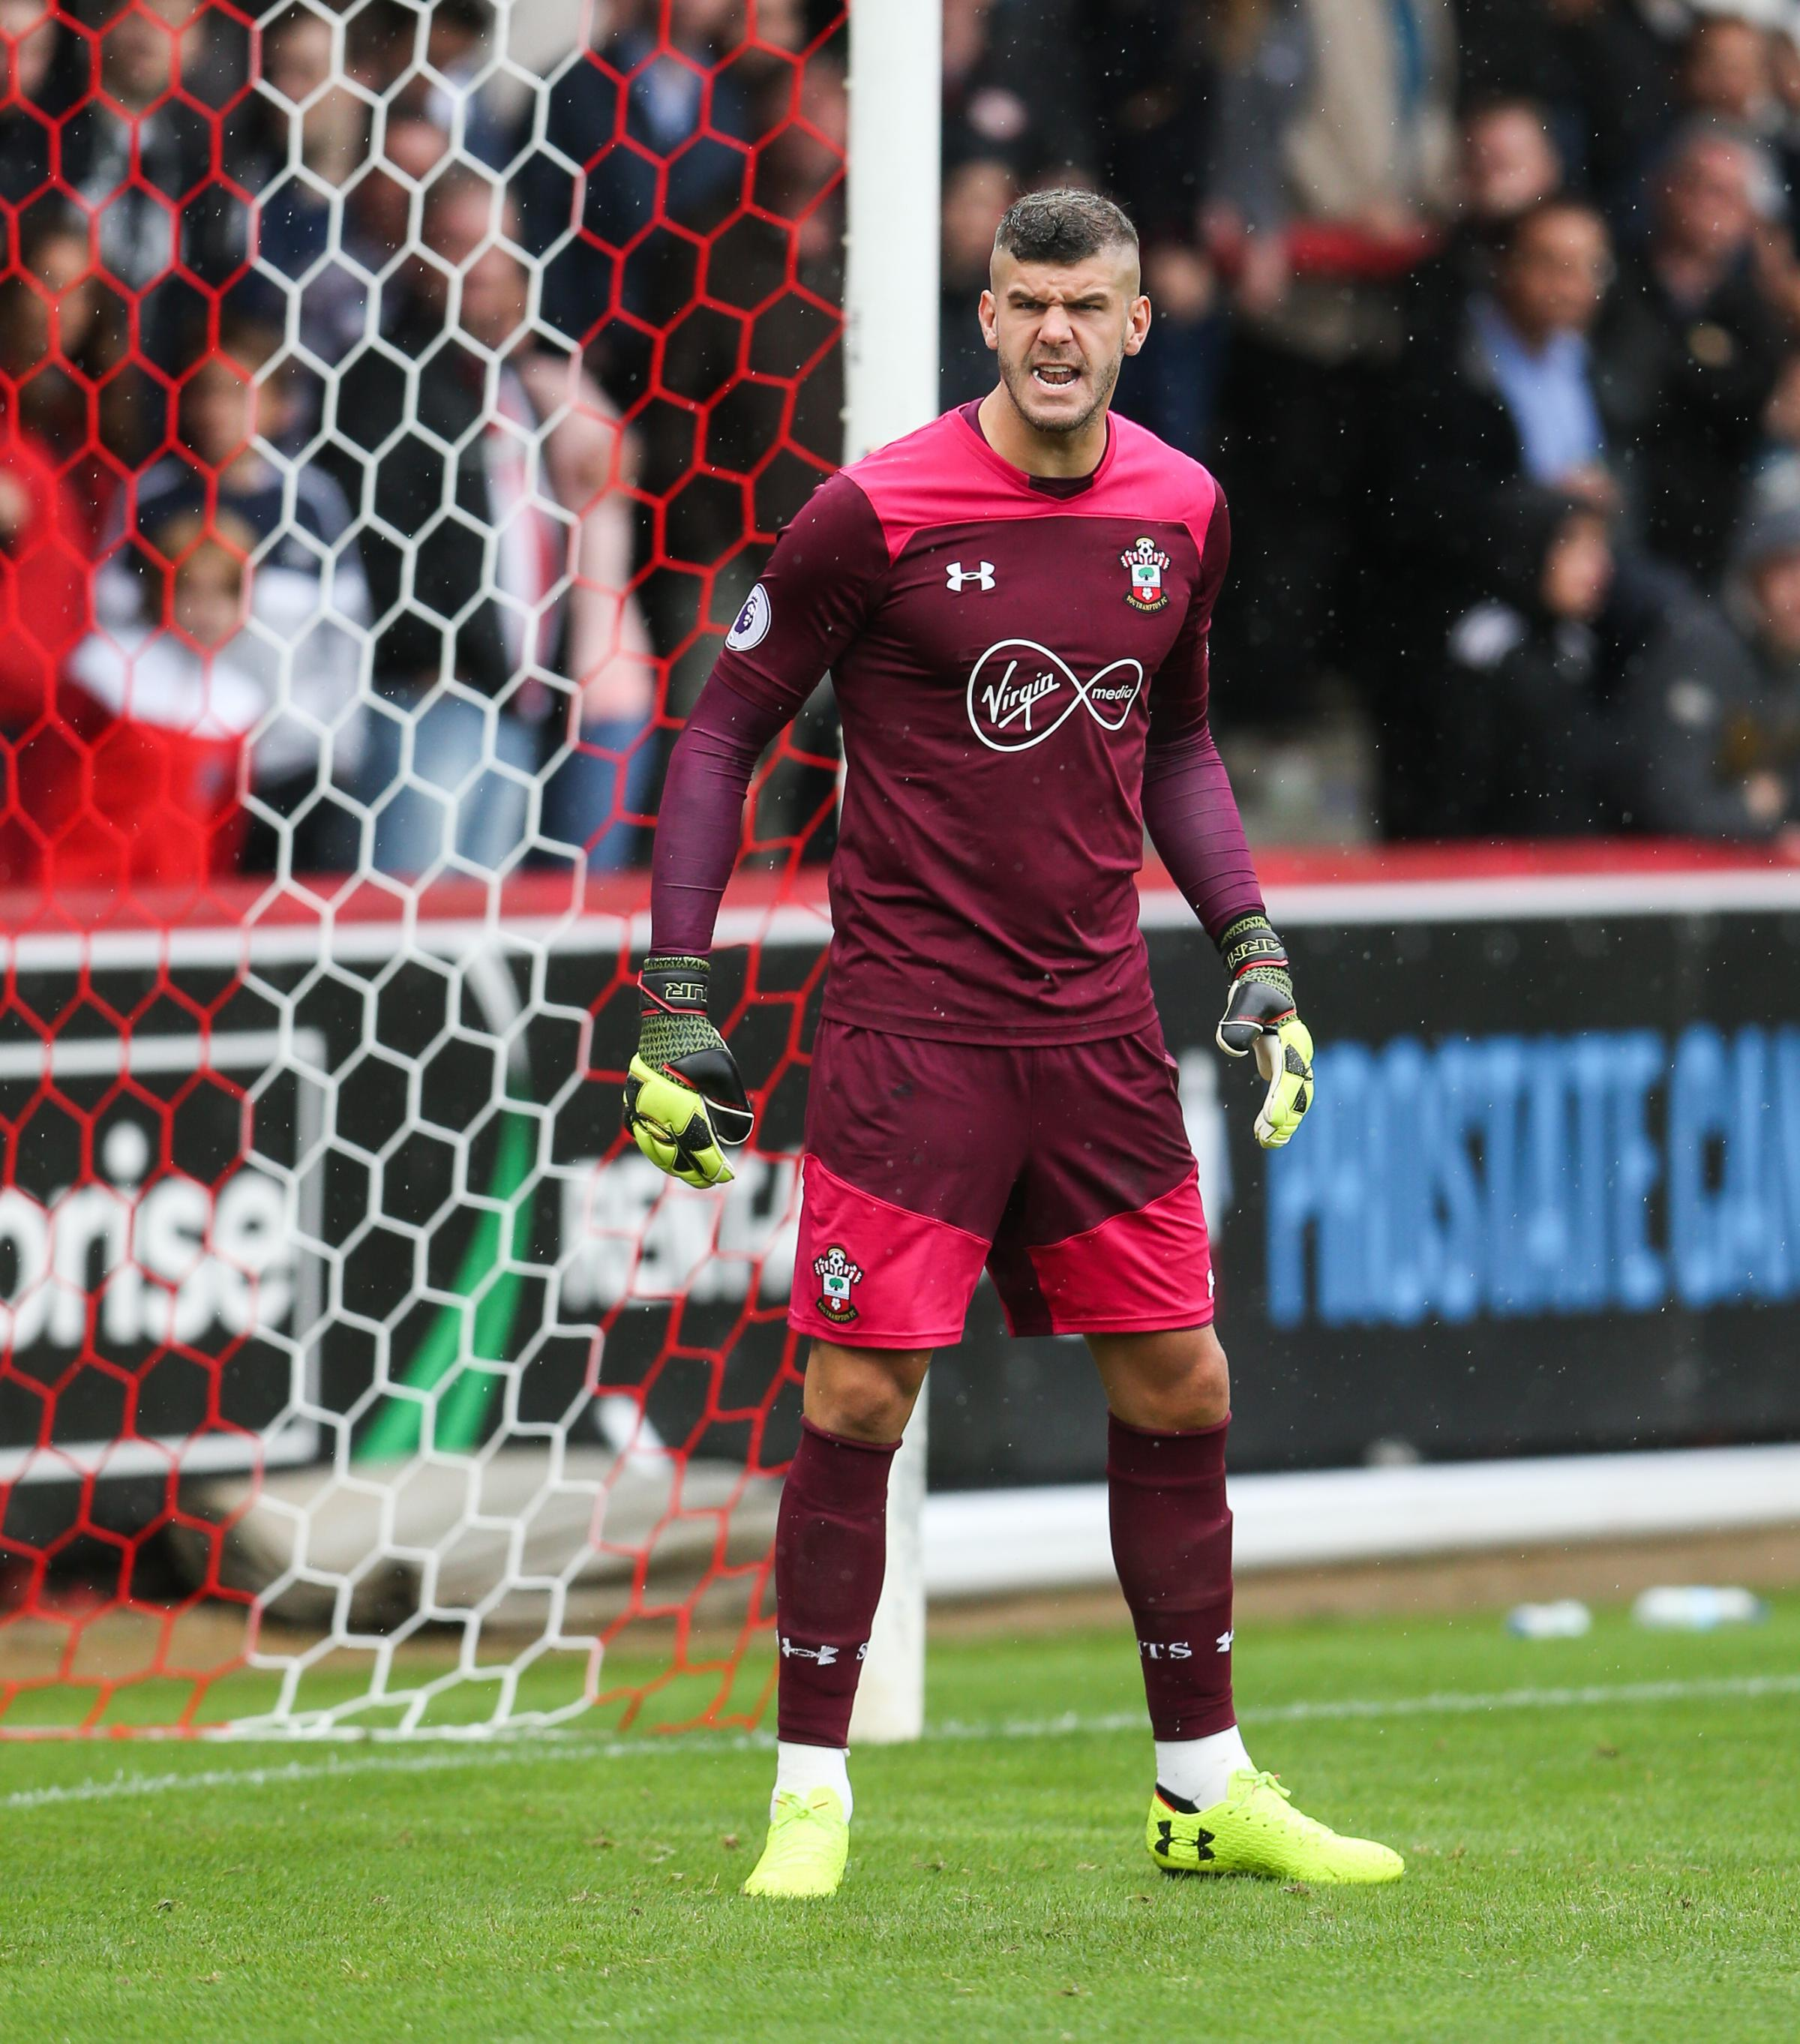 Forster returns to action